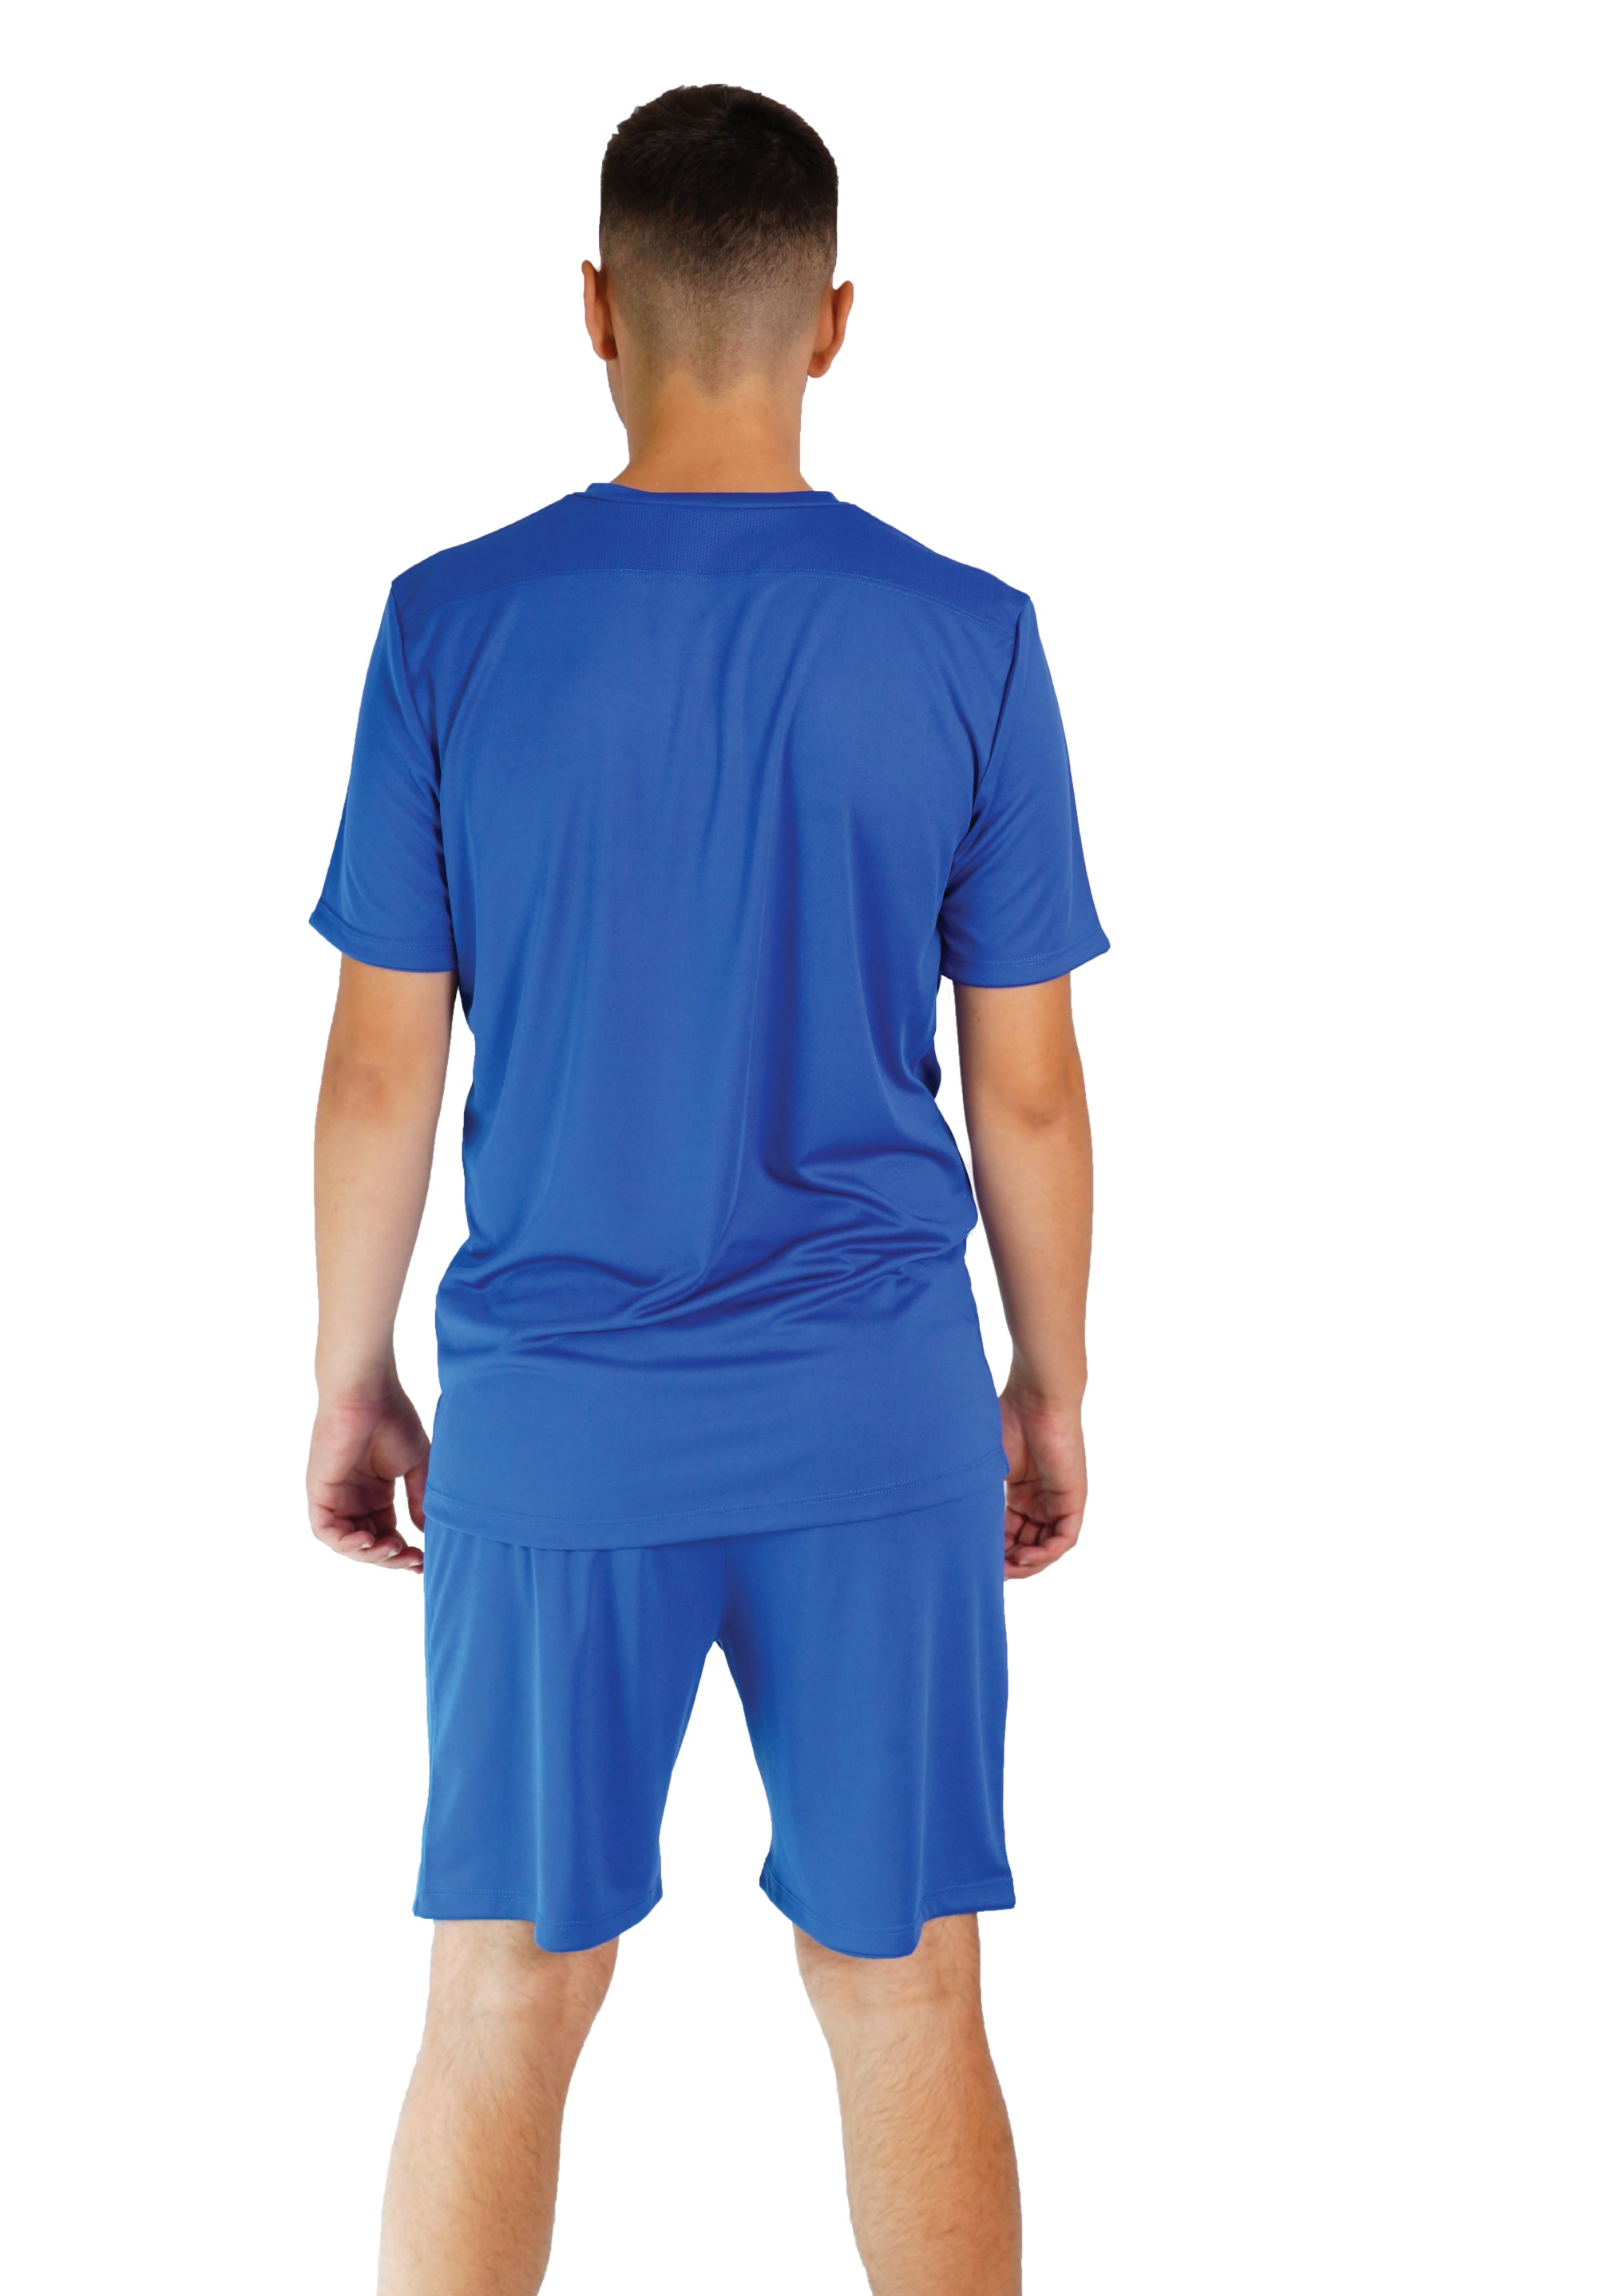 Football Game Uniform